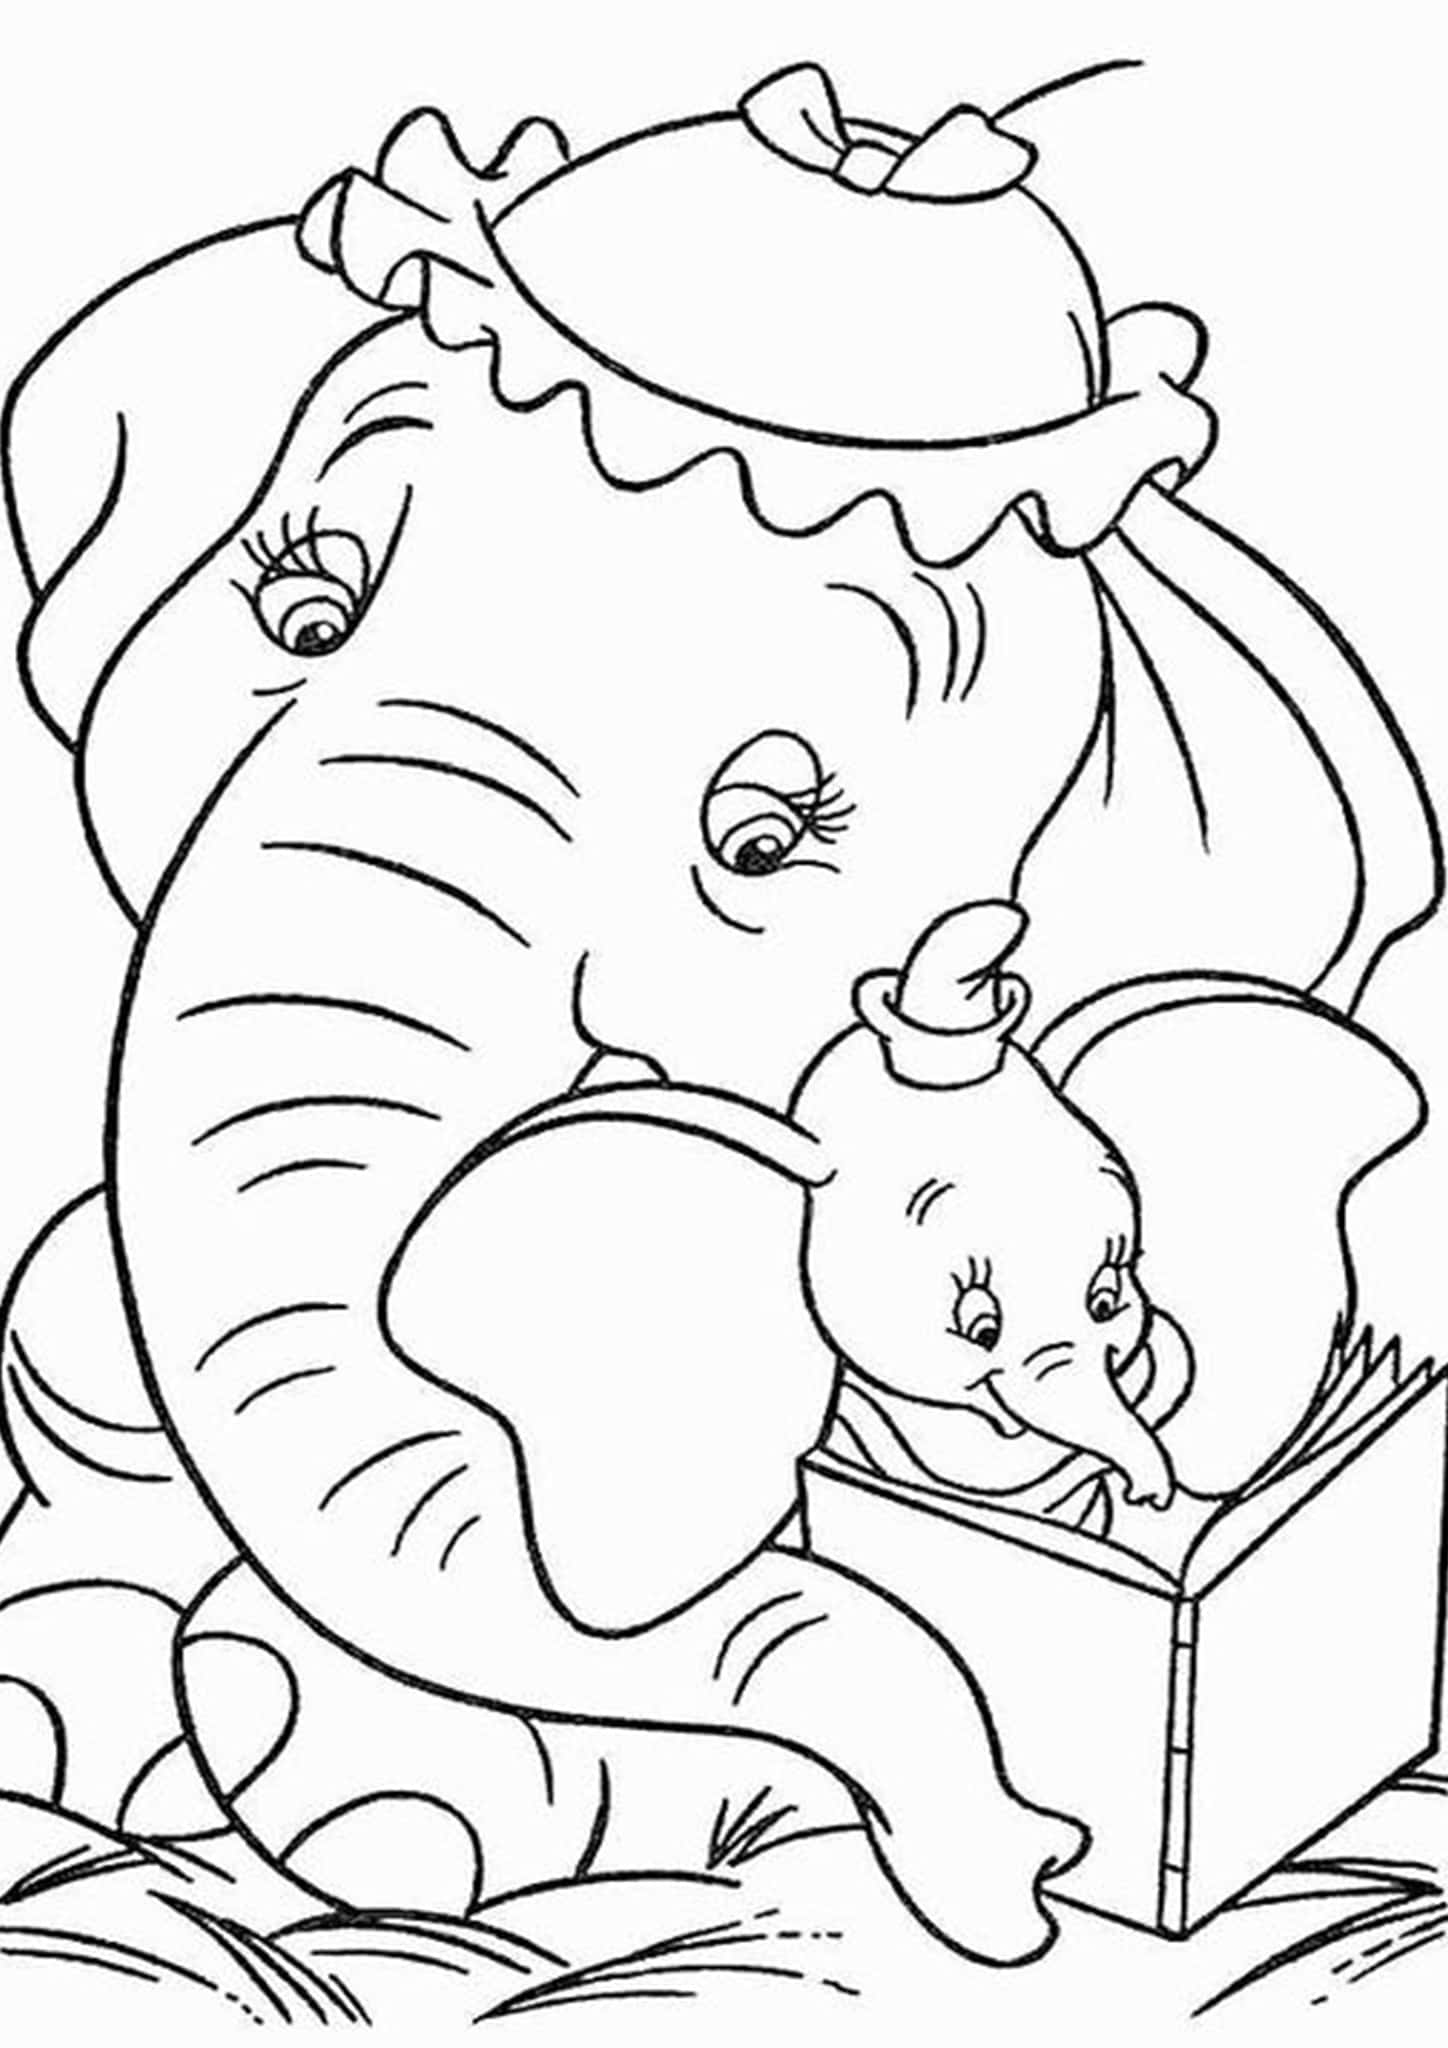 coloring book elephant images print download teaching kids through elephant coloring elephant book coloring images